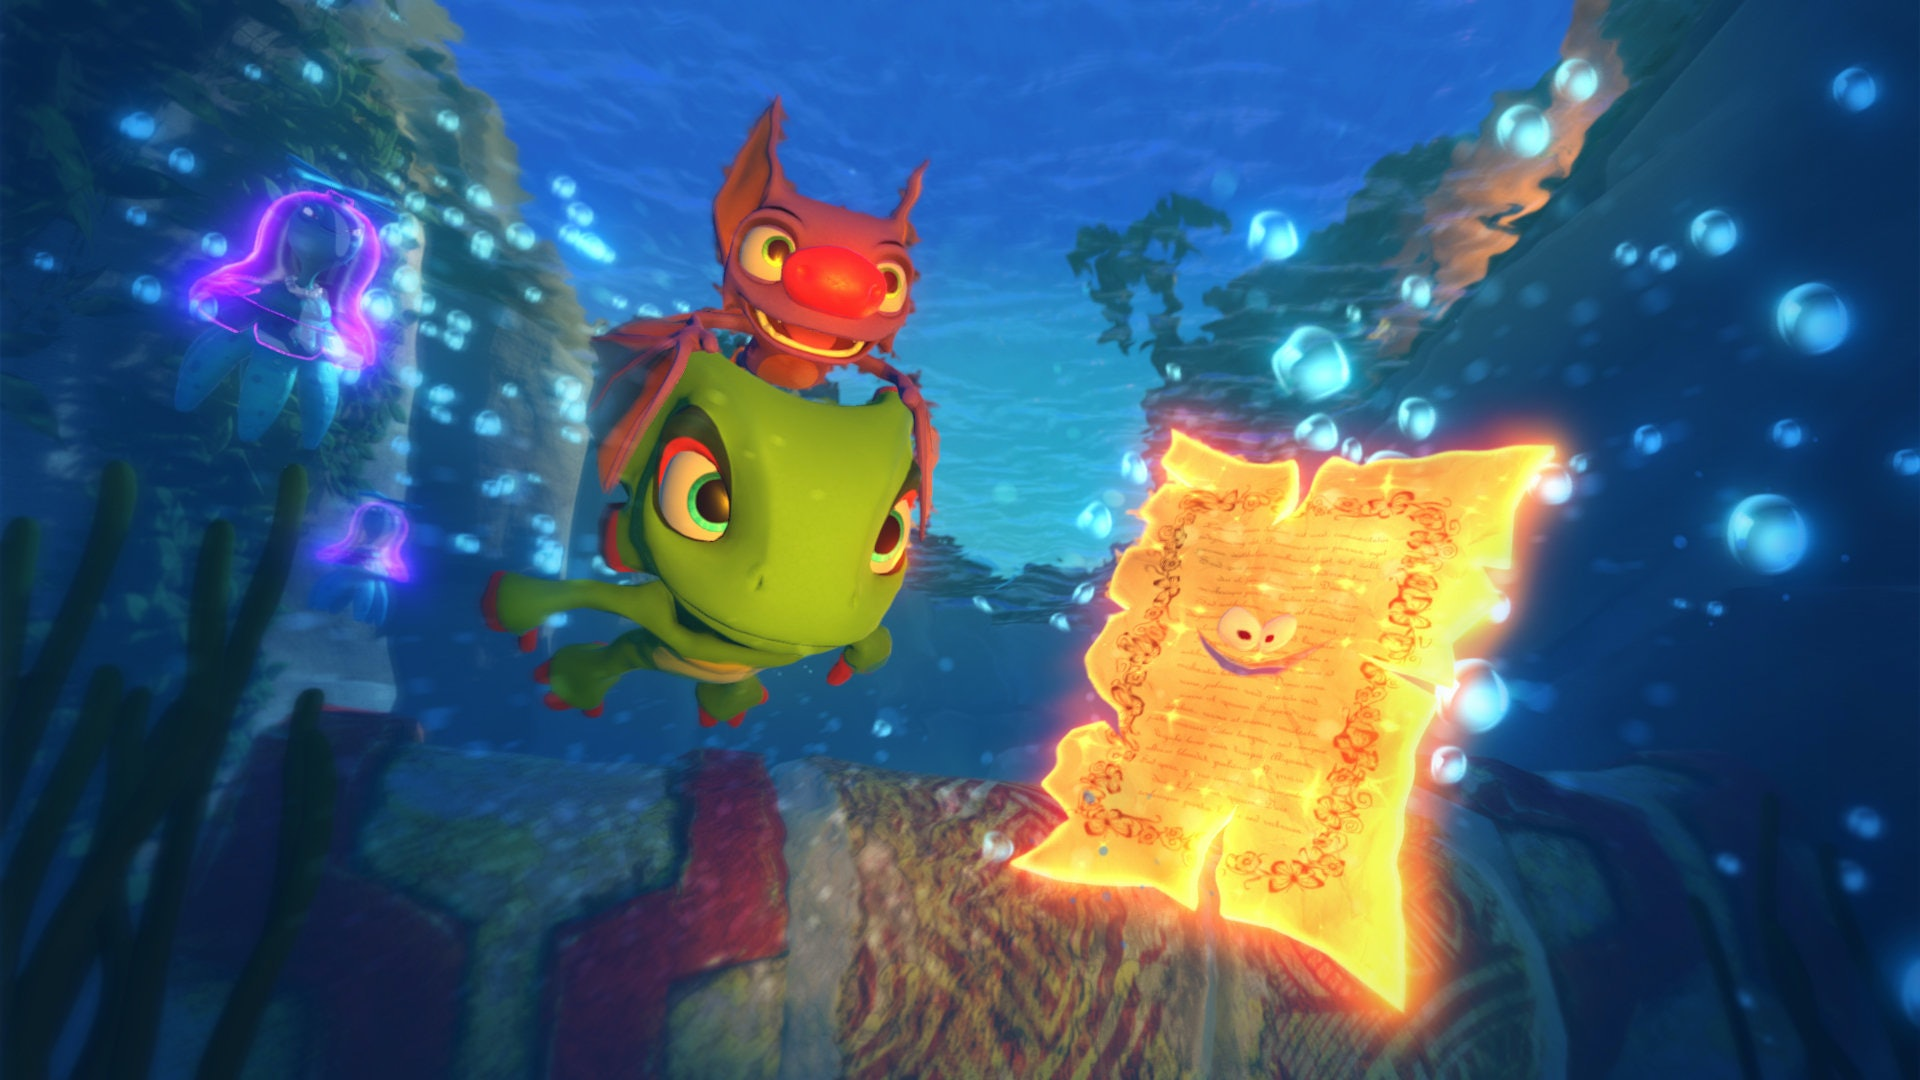 Yooka-Laylee' release date and price announced for PS4